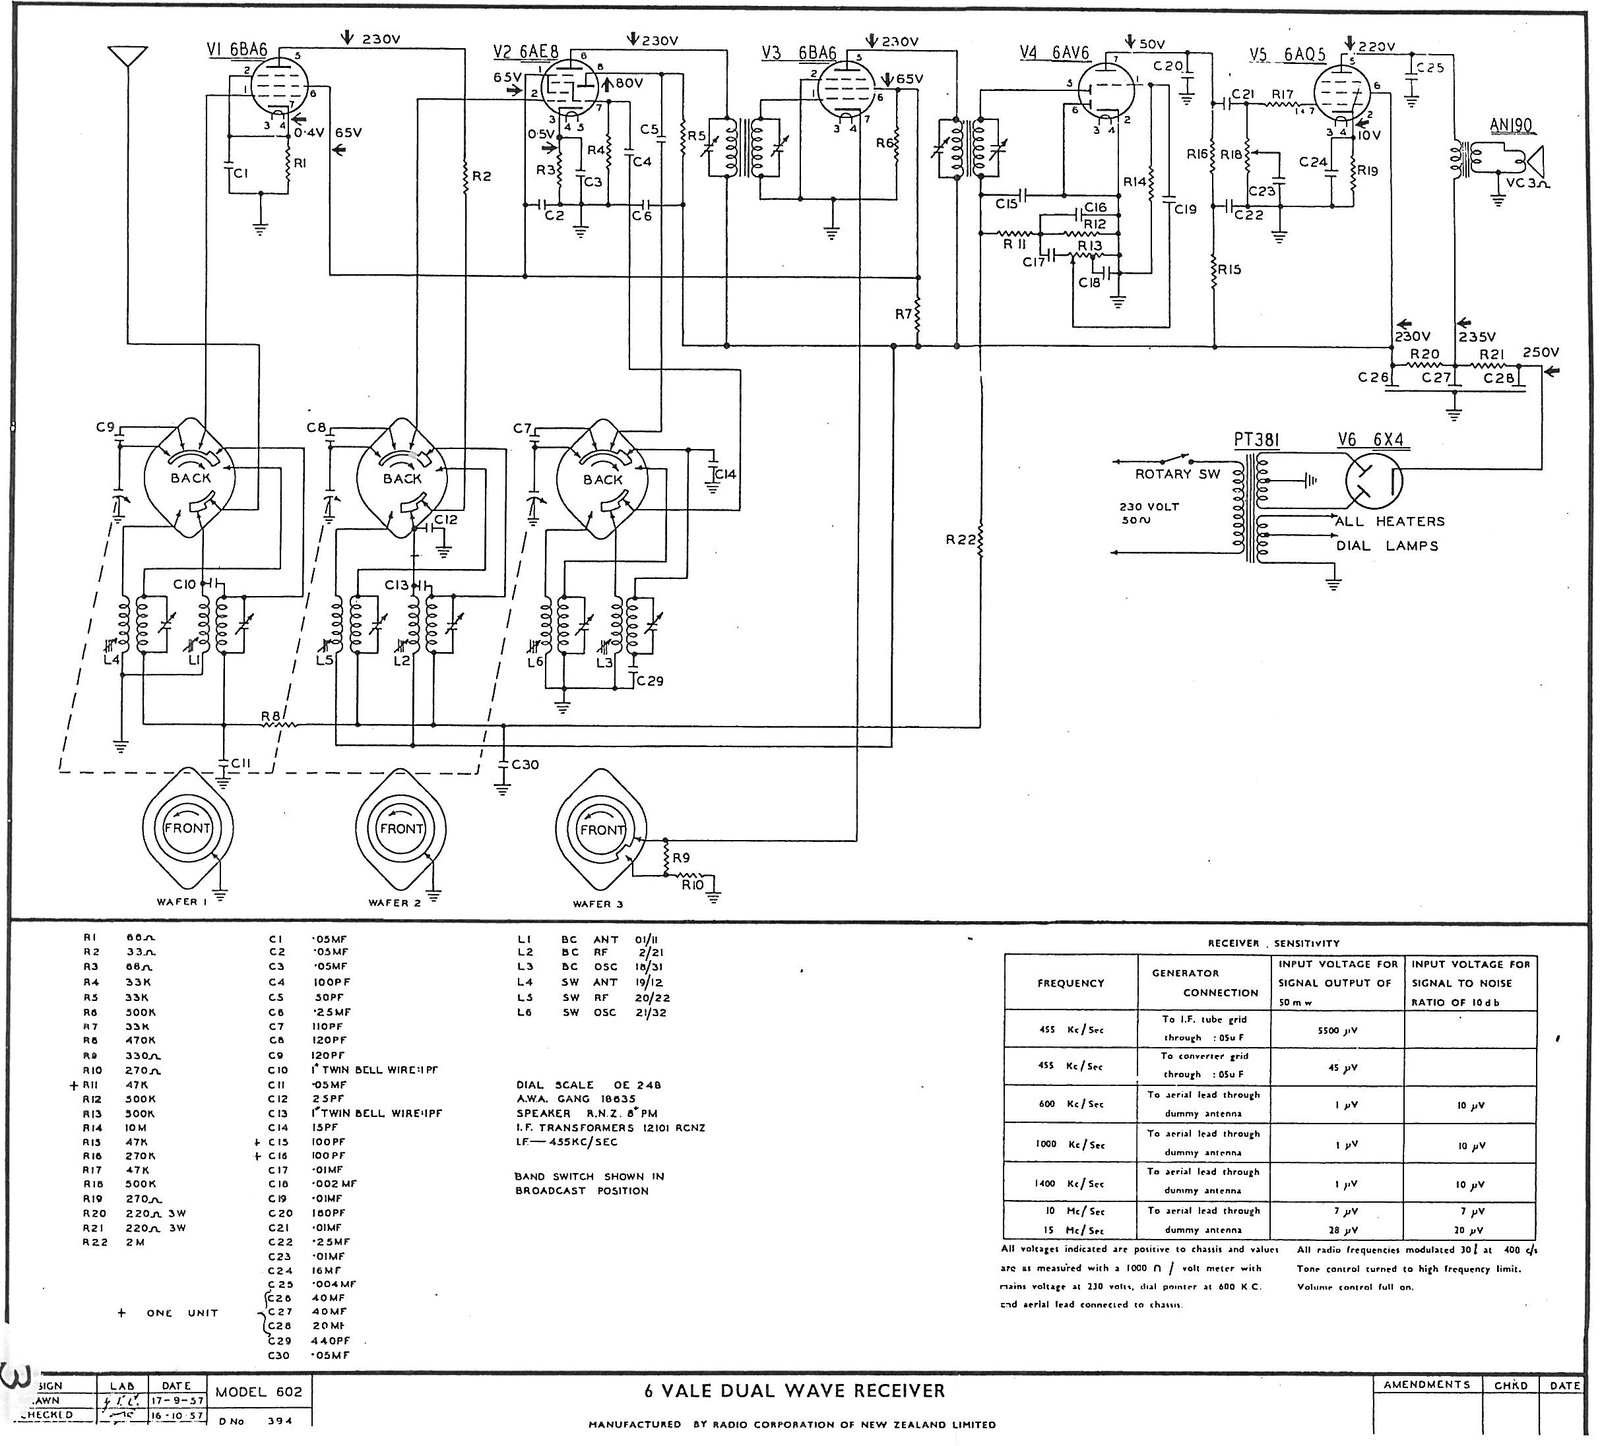 1957 Columbus model 602 Schematic